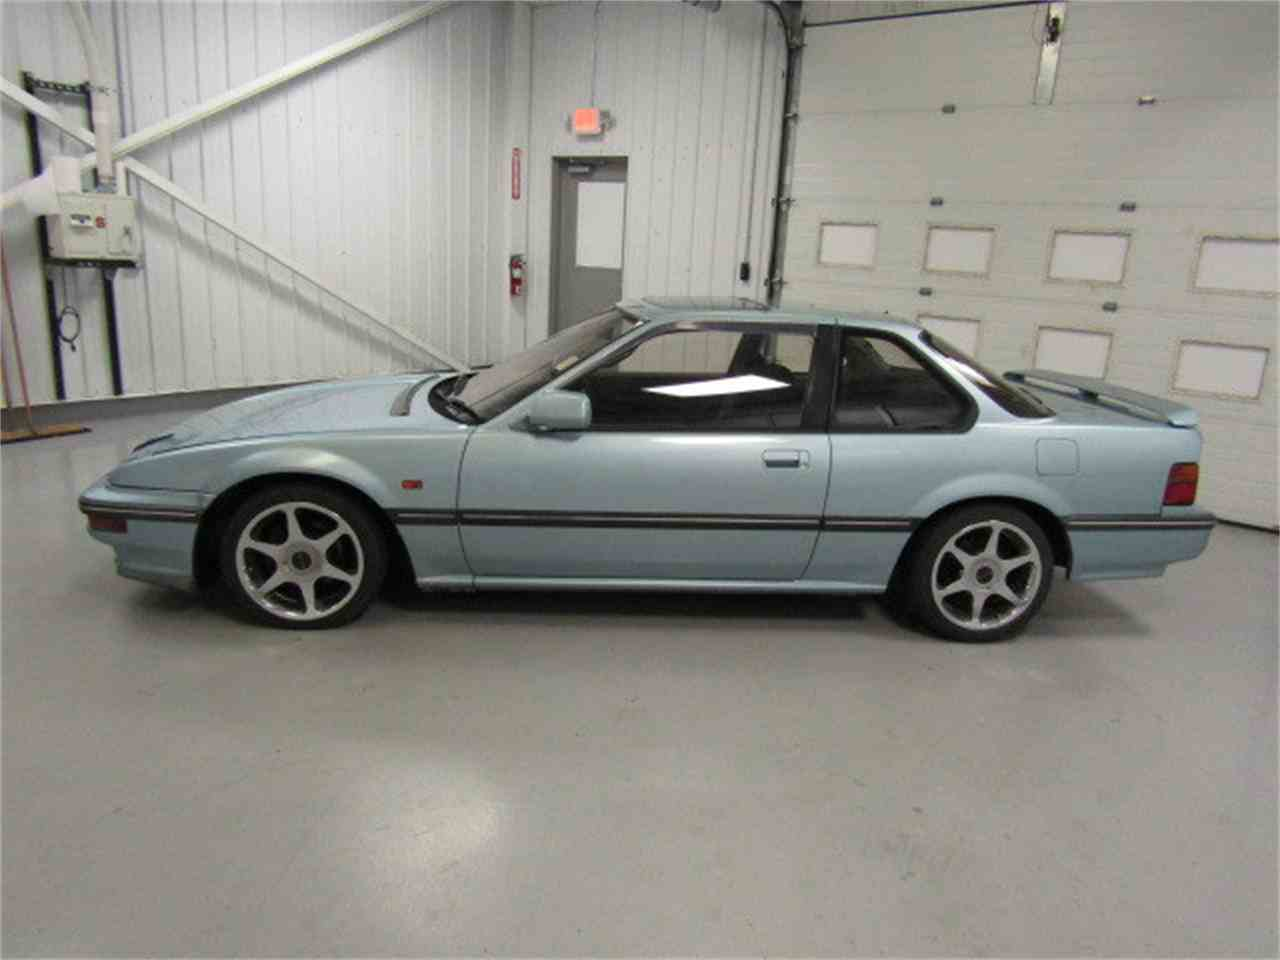 Large Picture of 1988 Honda Prelude located in Christiansburg Virginia - $6,979.00 Offered by Duncan Imports & Classic Cars - JM30